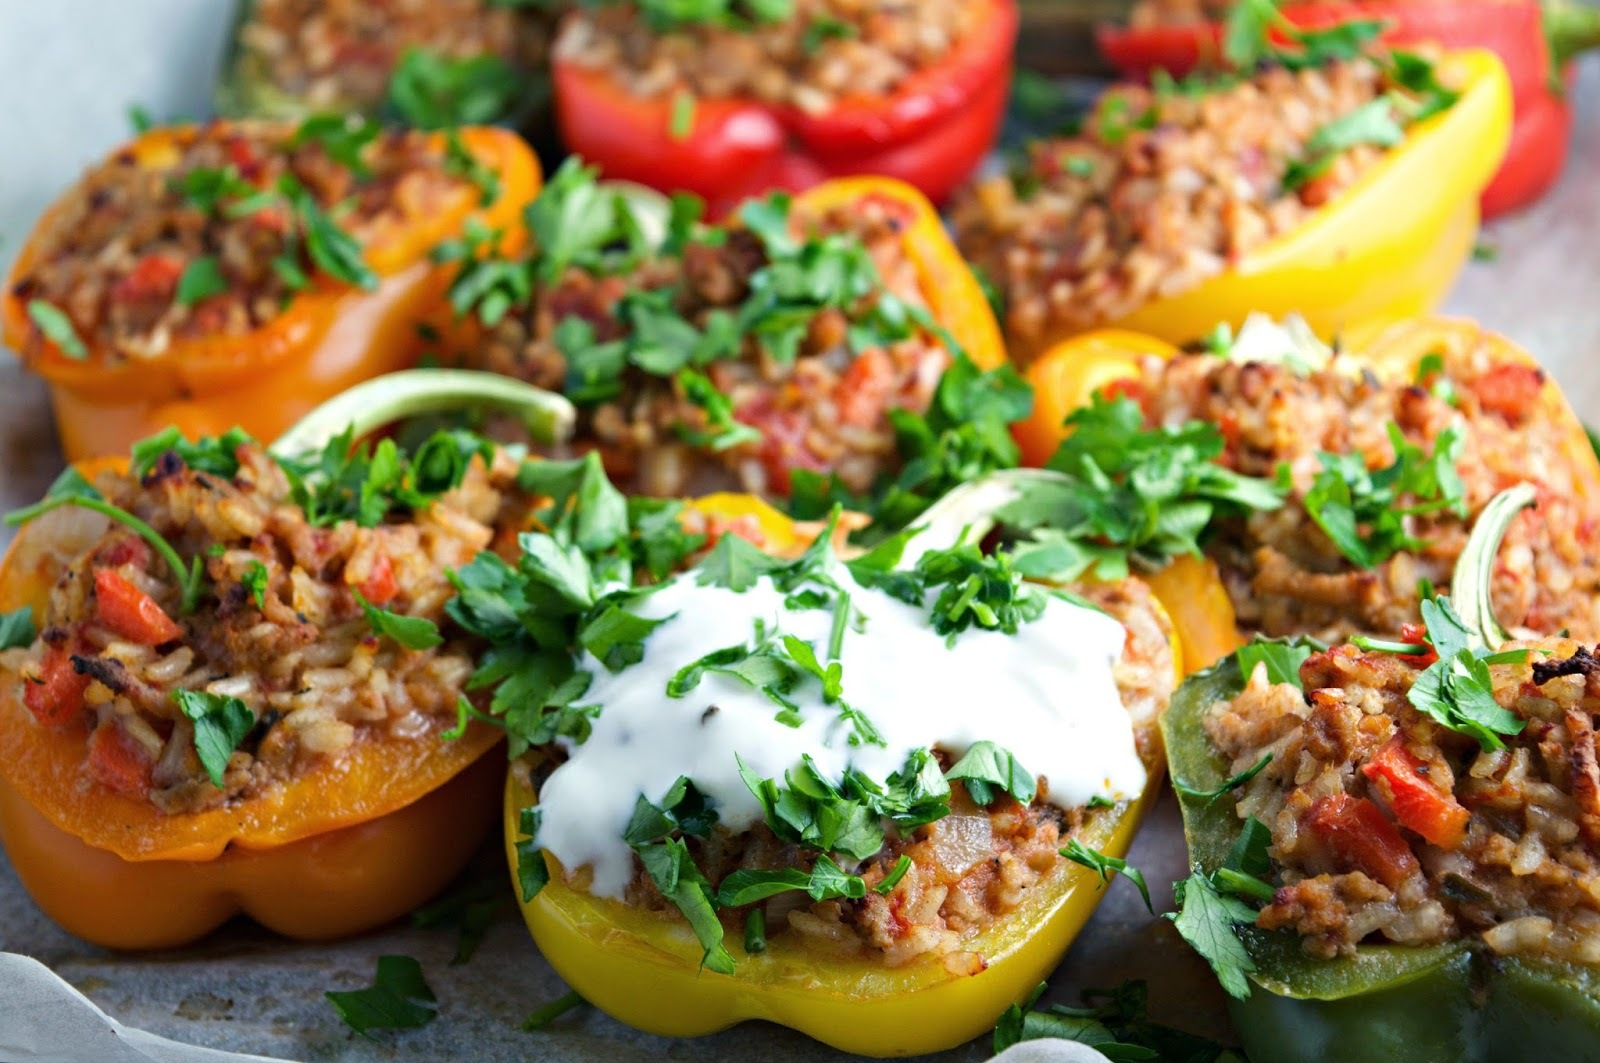 Stuffed Peppers with Minced Pork, Vegetables & Rice